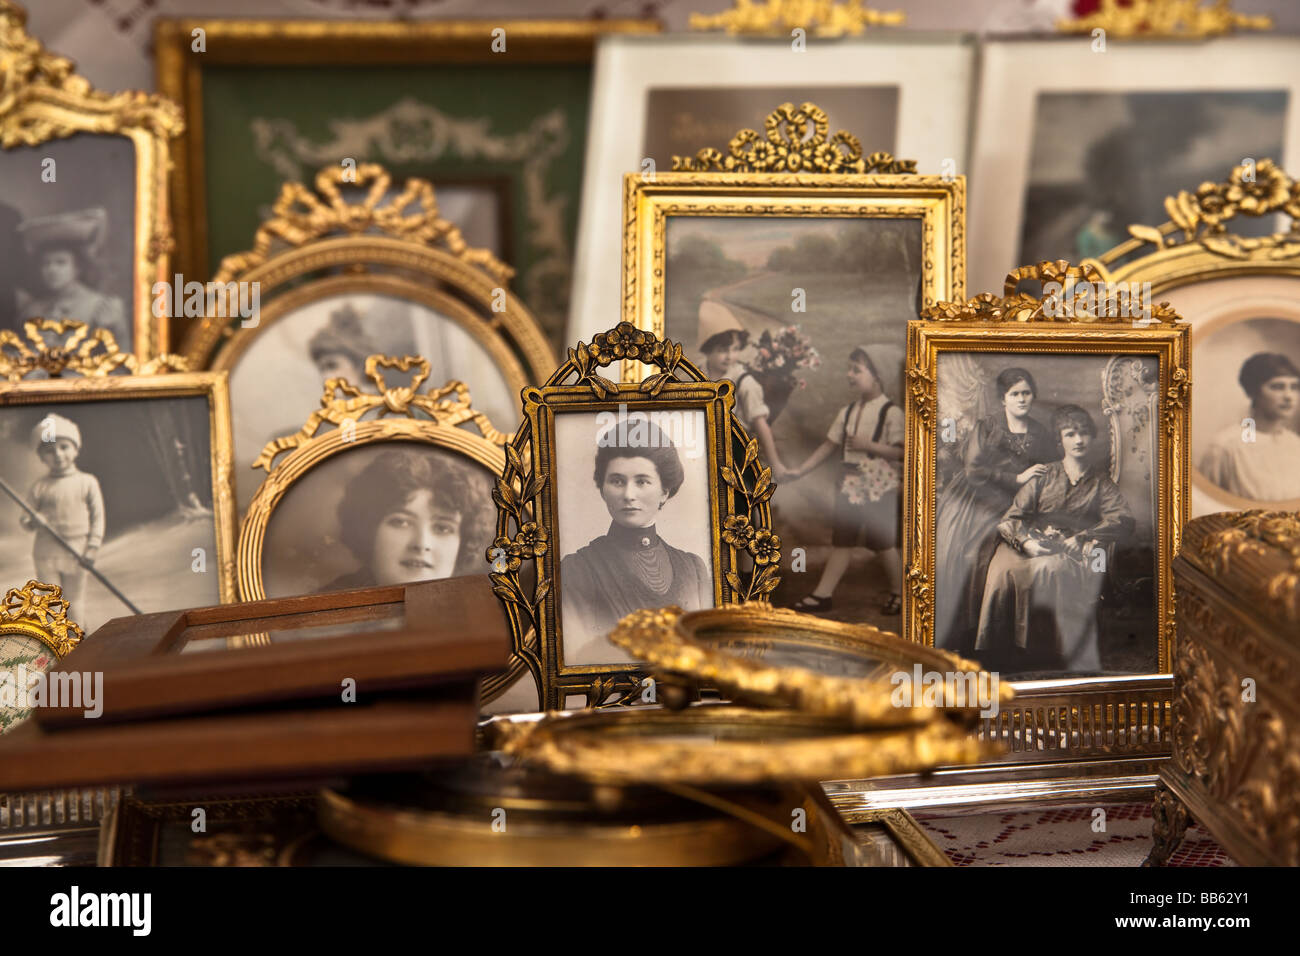 Antique photographs portraits in gold frames Neuchatel Switzerland. Charles Lupica - Stock Image